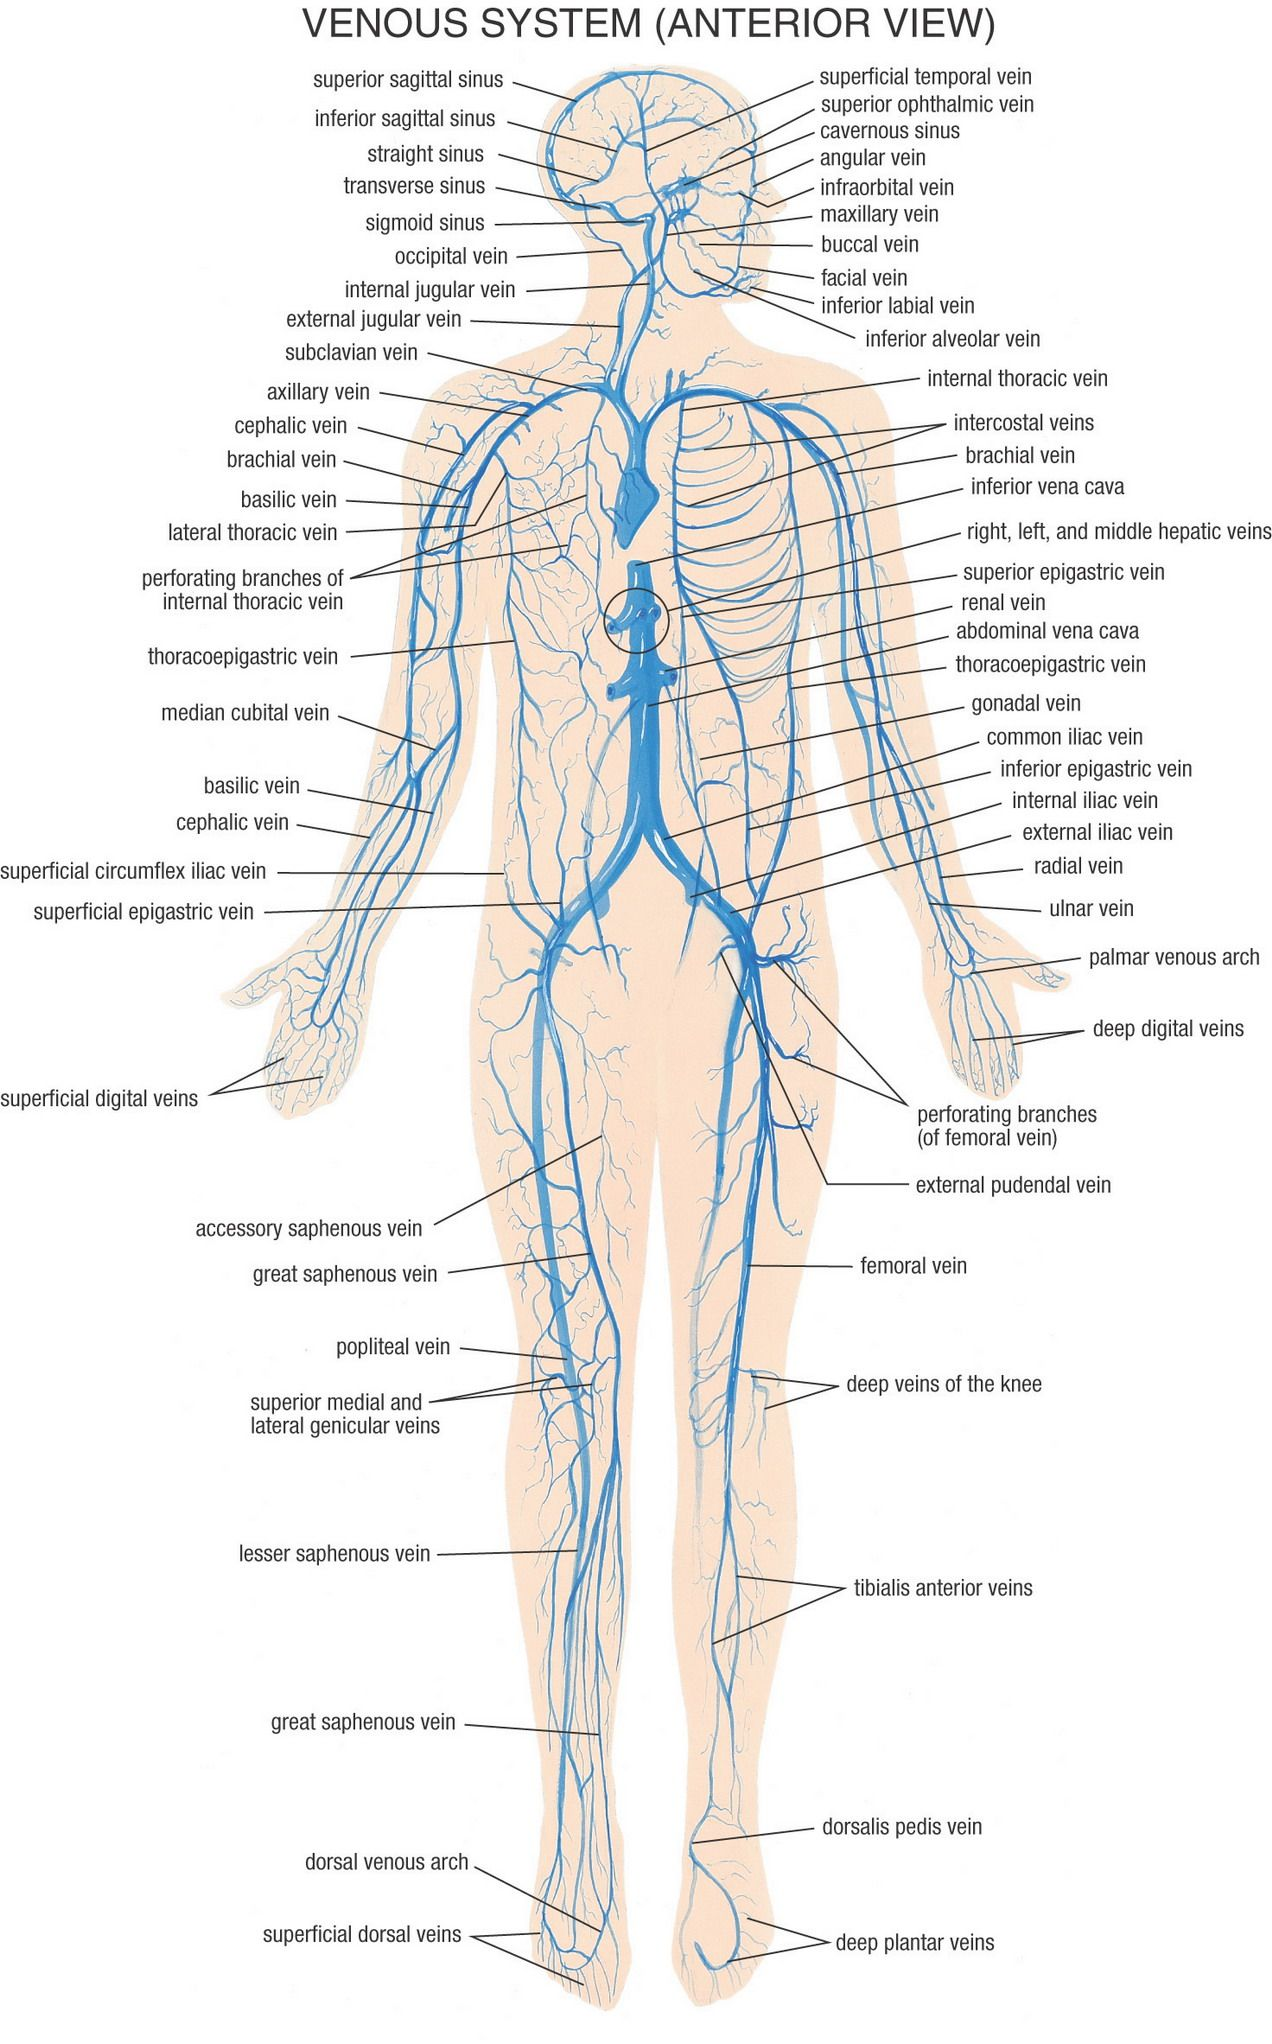 Anatomy Pictures   טבע הריפוי   Pinterest   Anatomy, Medical and ...